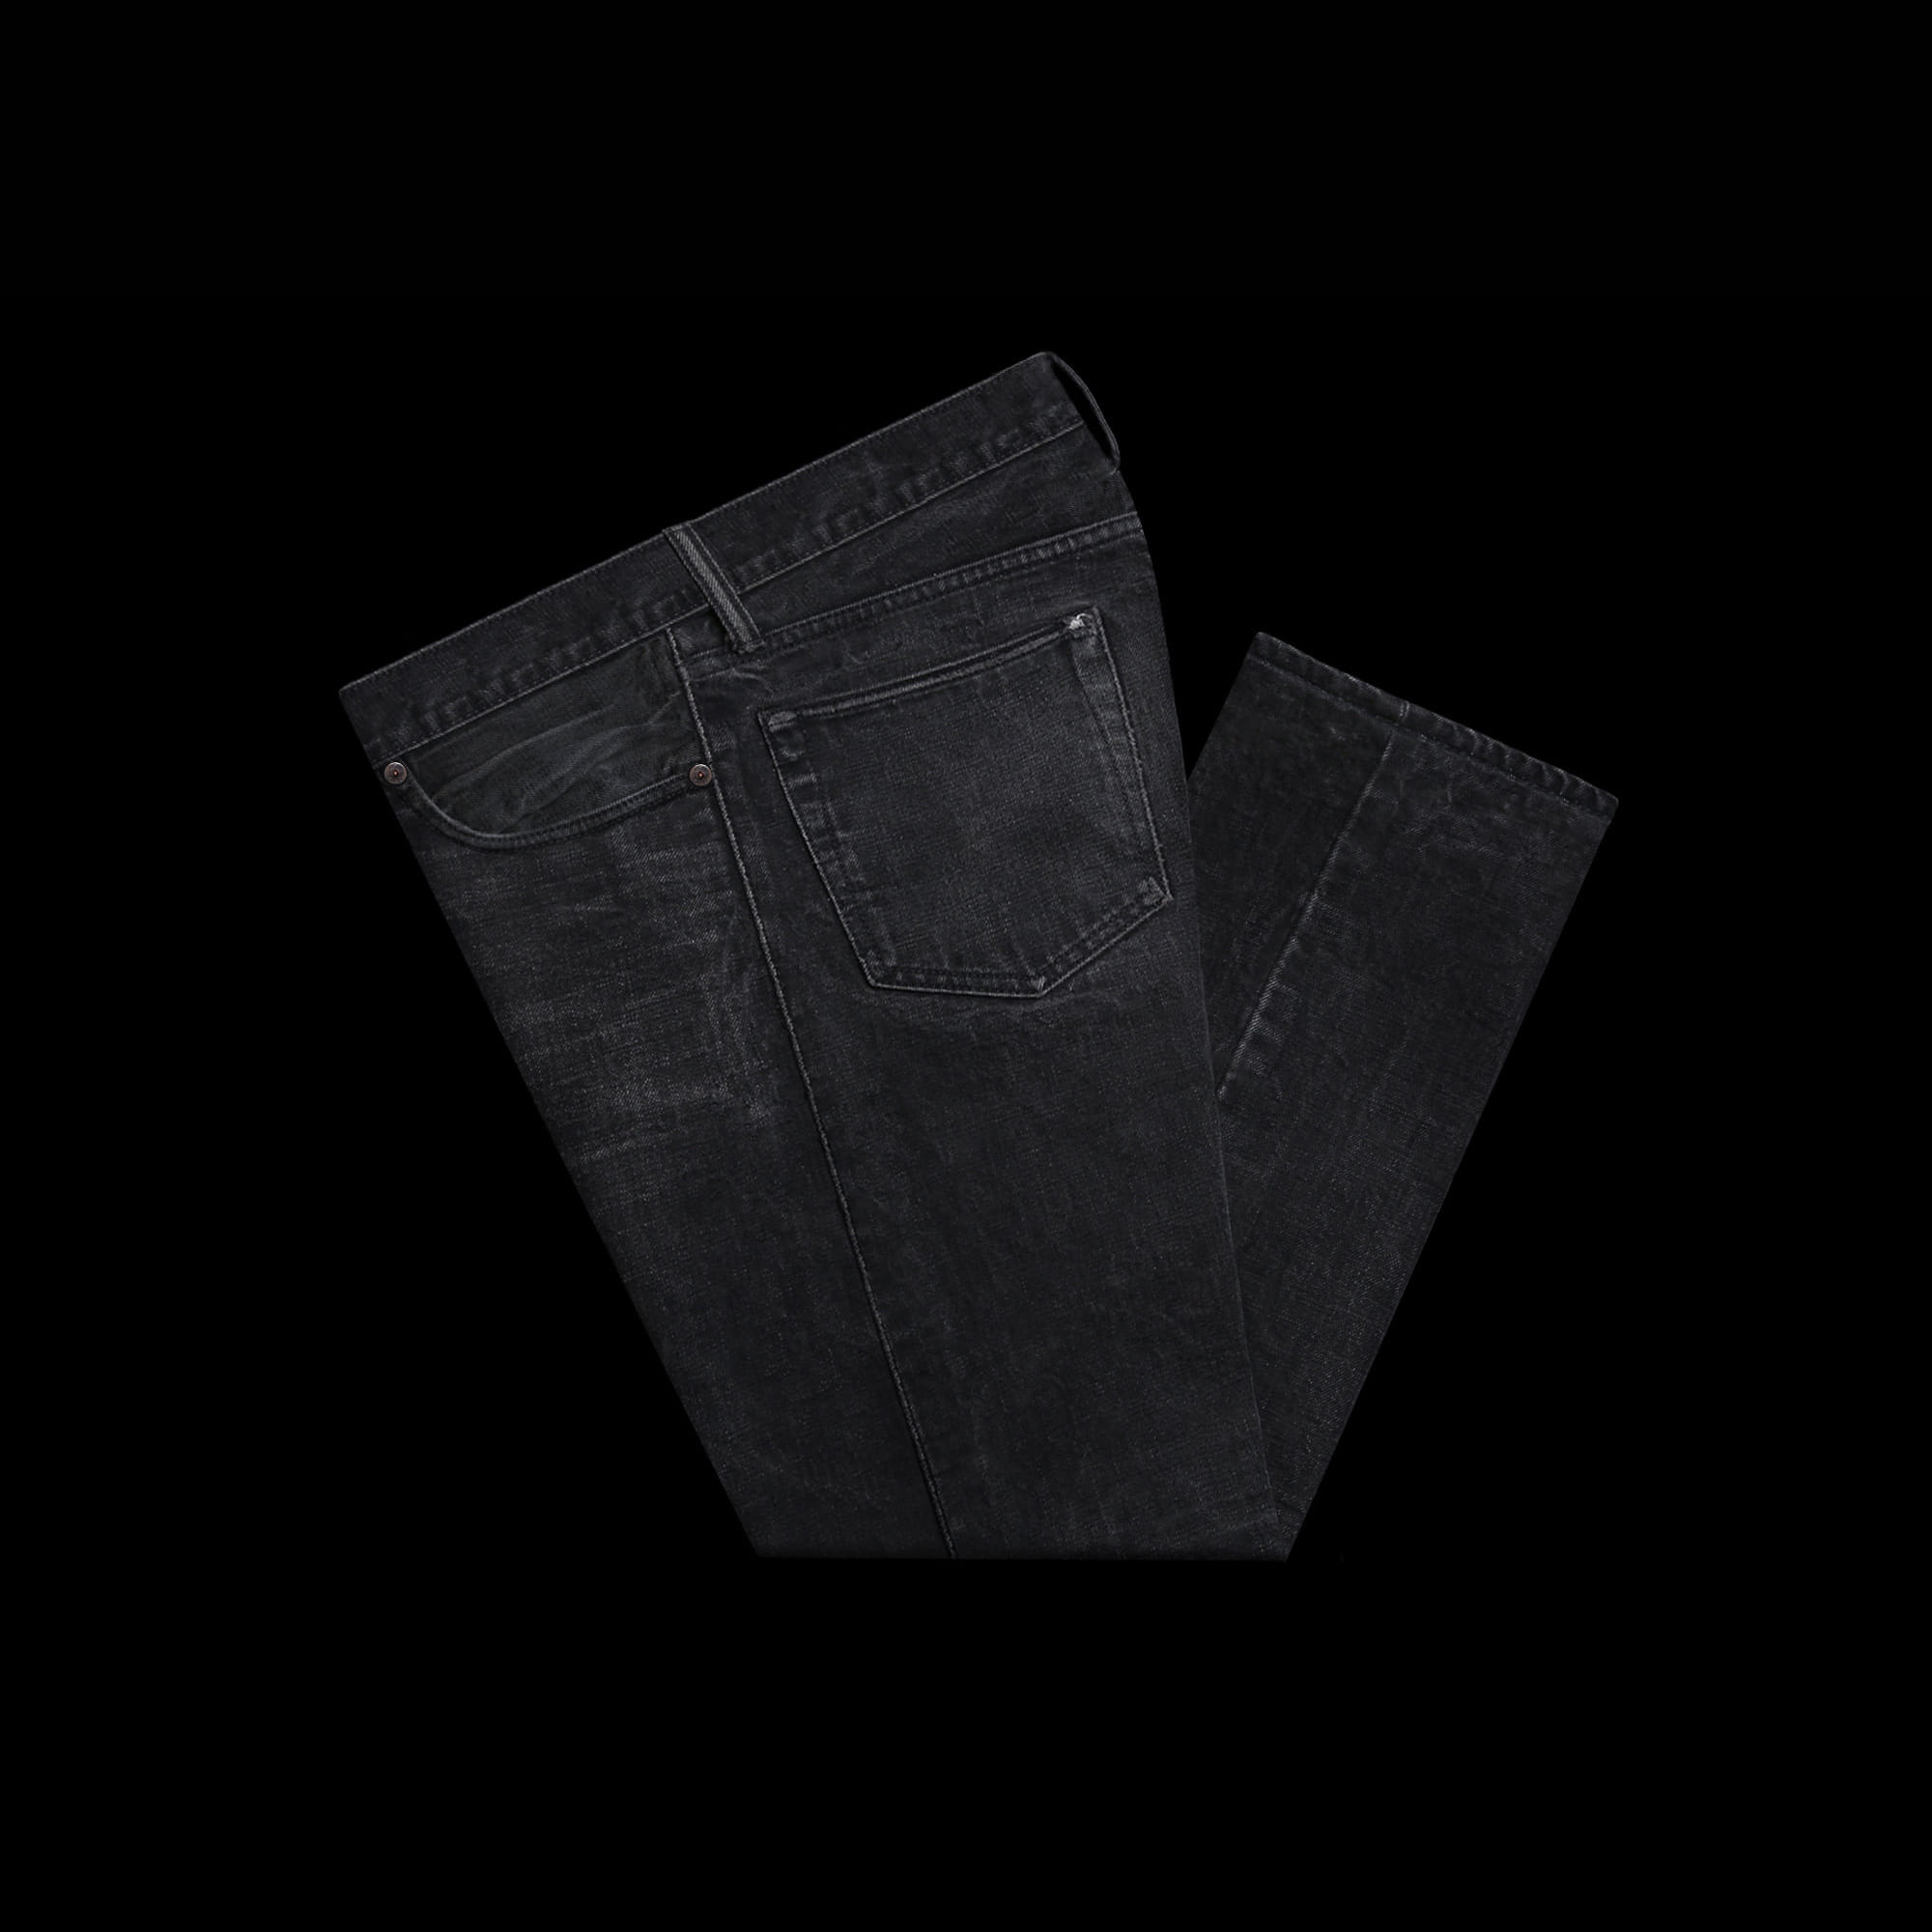 RRLSLIM FITWOVEN SELVEDGE DENIM